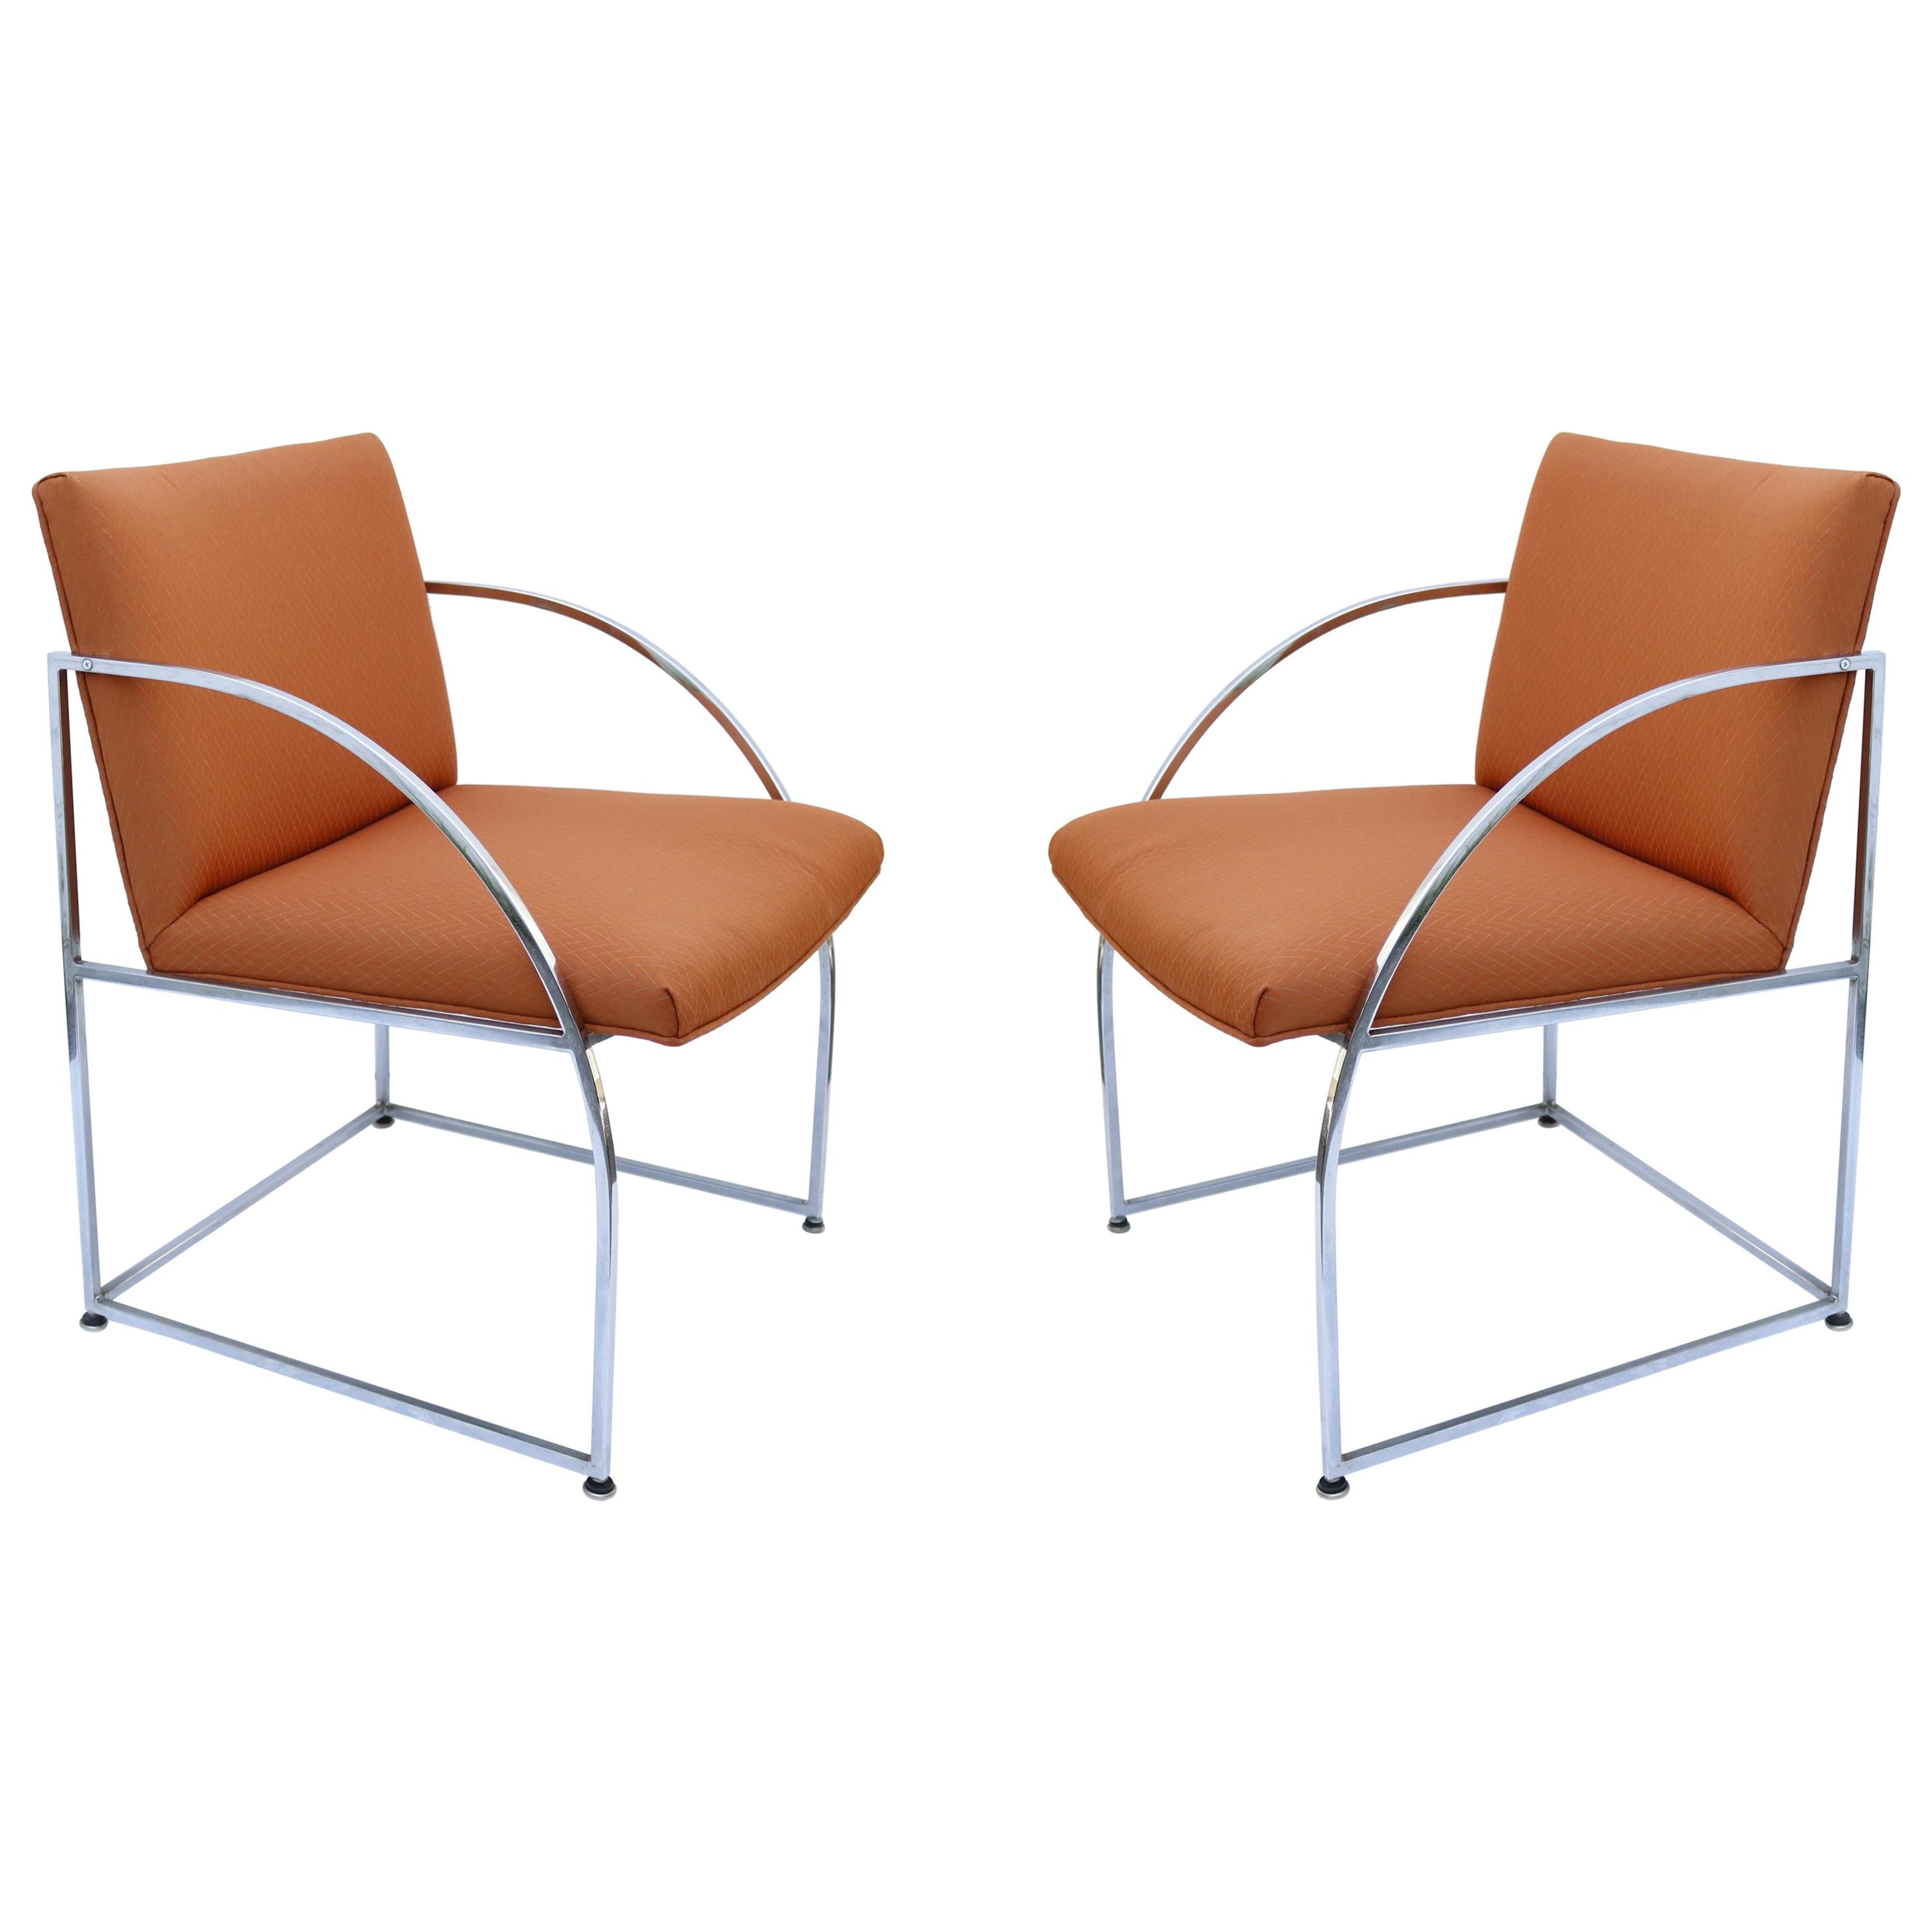 Chrome-Framed Pair of Chairs by Milo Baughman for Thayer Coggin